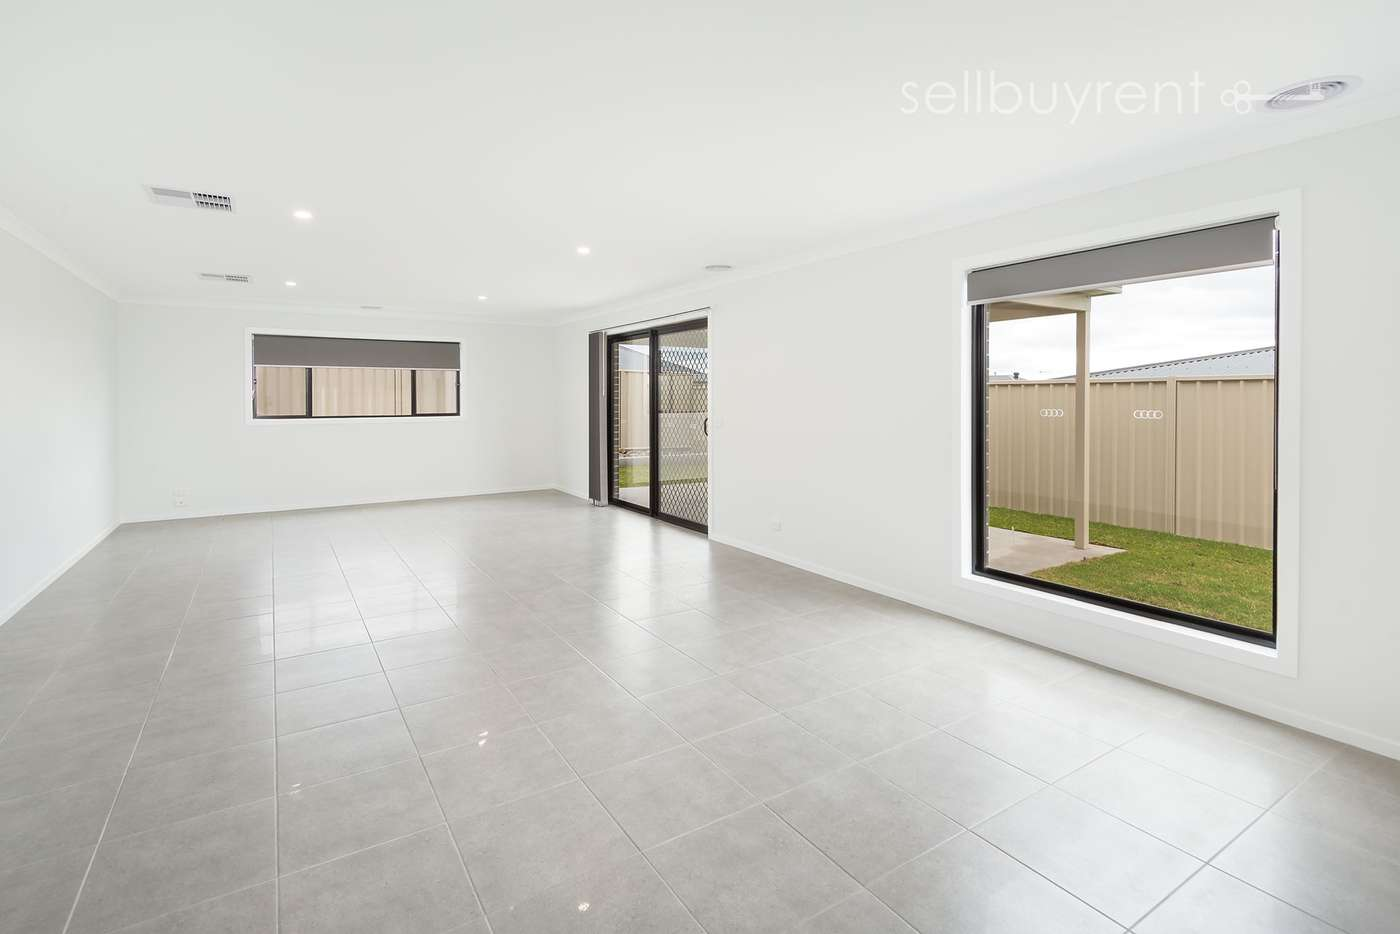 Sixth view of Homely house listing, 35 DARTNELL CRESCENT, Wodonga VIC 3690